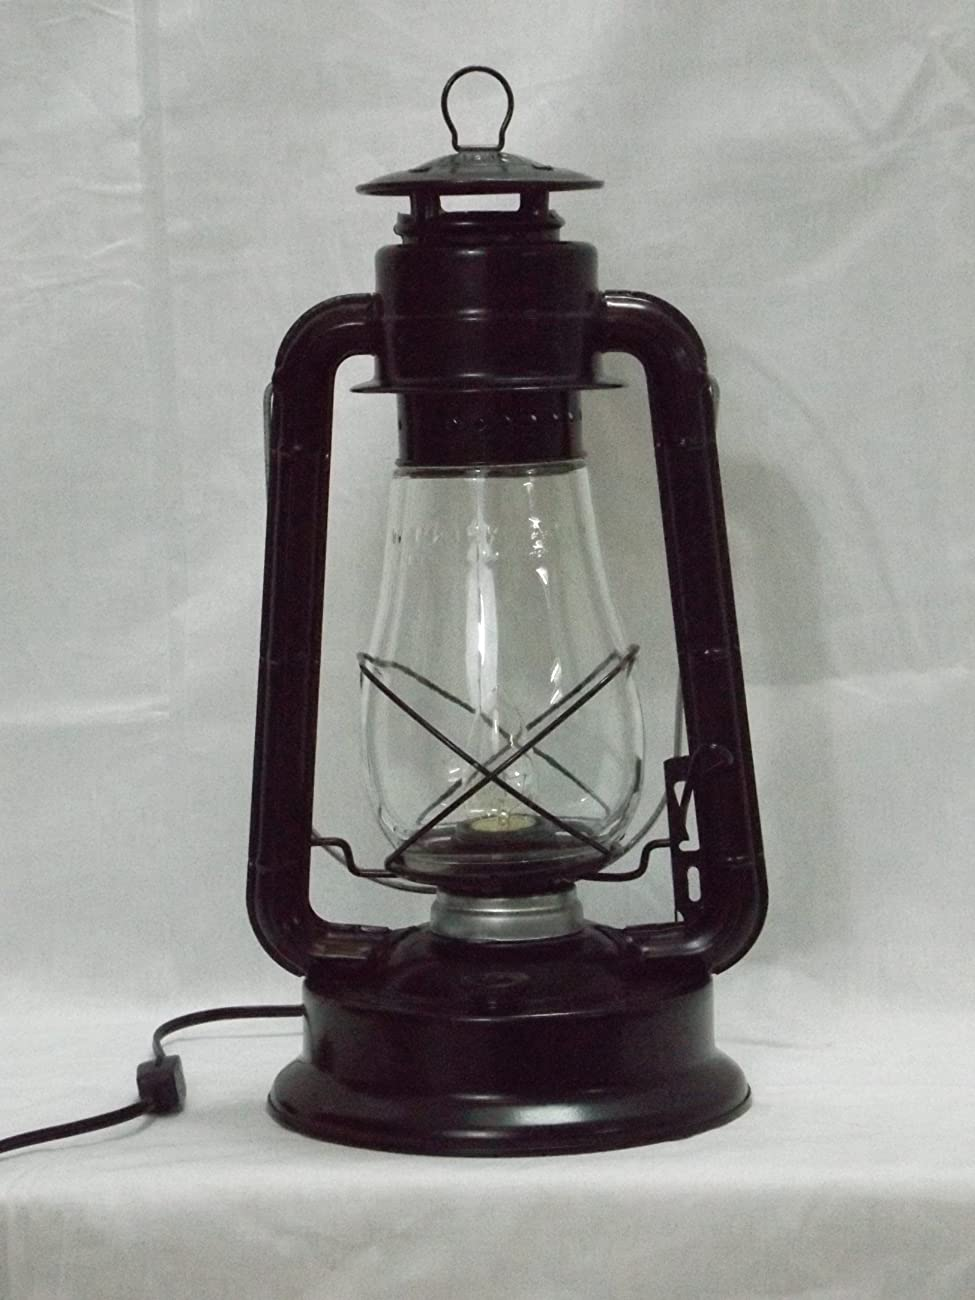 Dietz Blizzard 'Vintage Style' Electric Lantern Table Lamp - Black 1